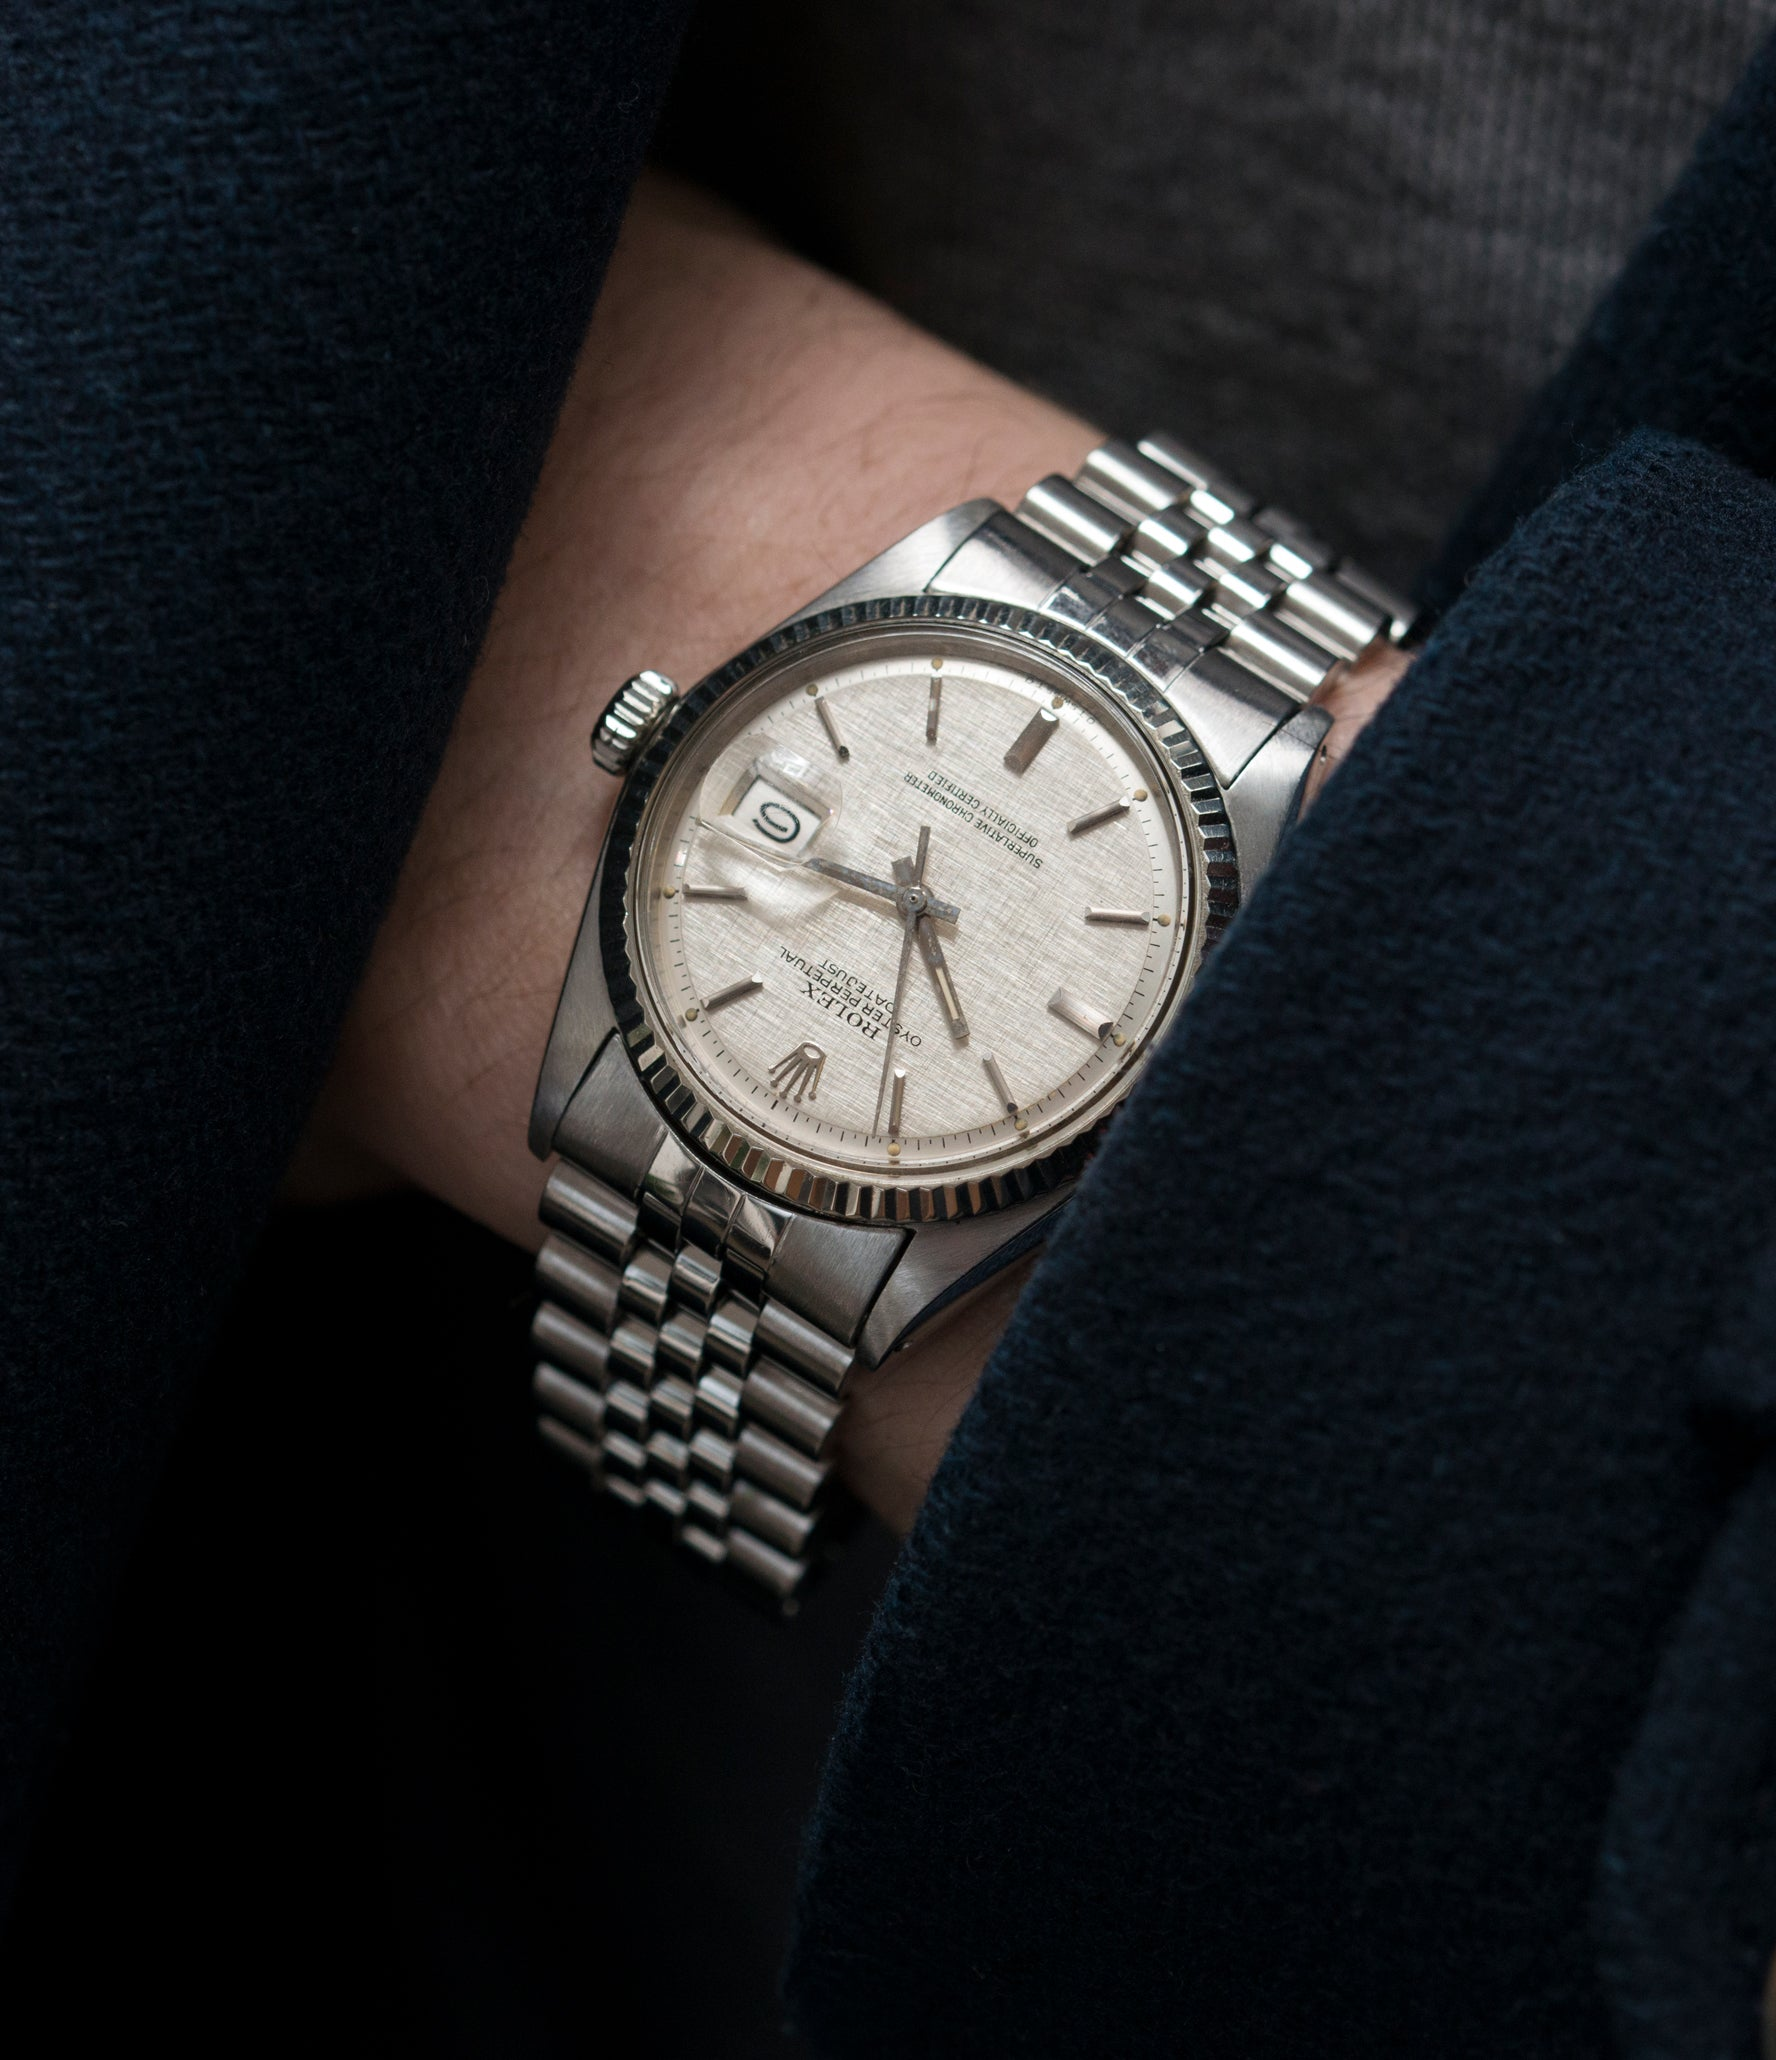 steel Rolex Datejust 1601 linen dial Oyster Perpetual vintage automatic steel sport dress watch for sale online at A Collected Man London UK specialist rare vintage watches